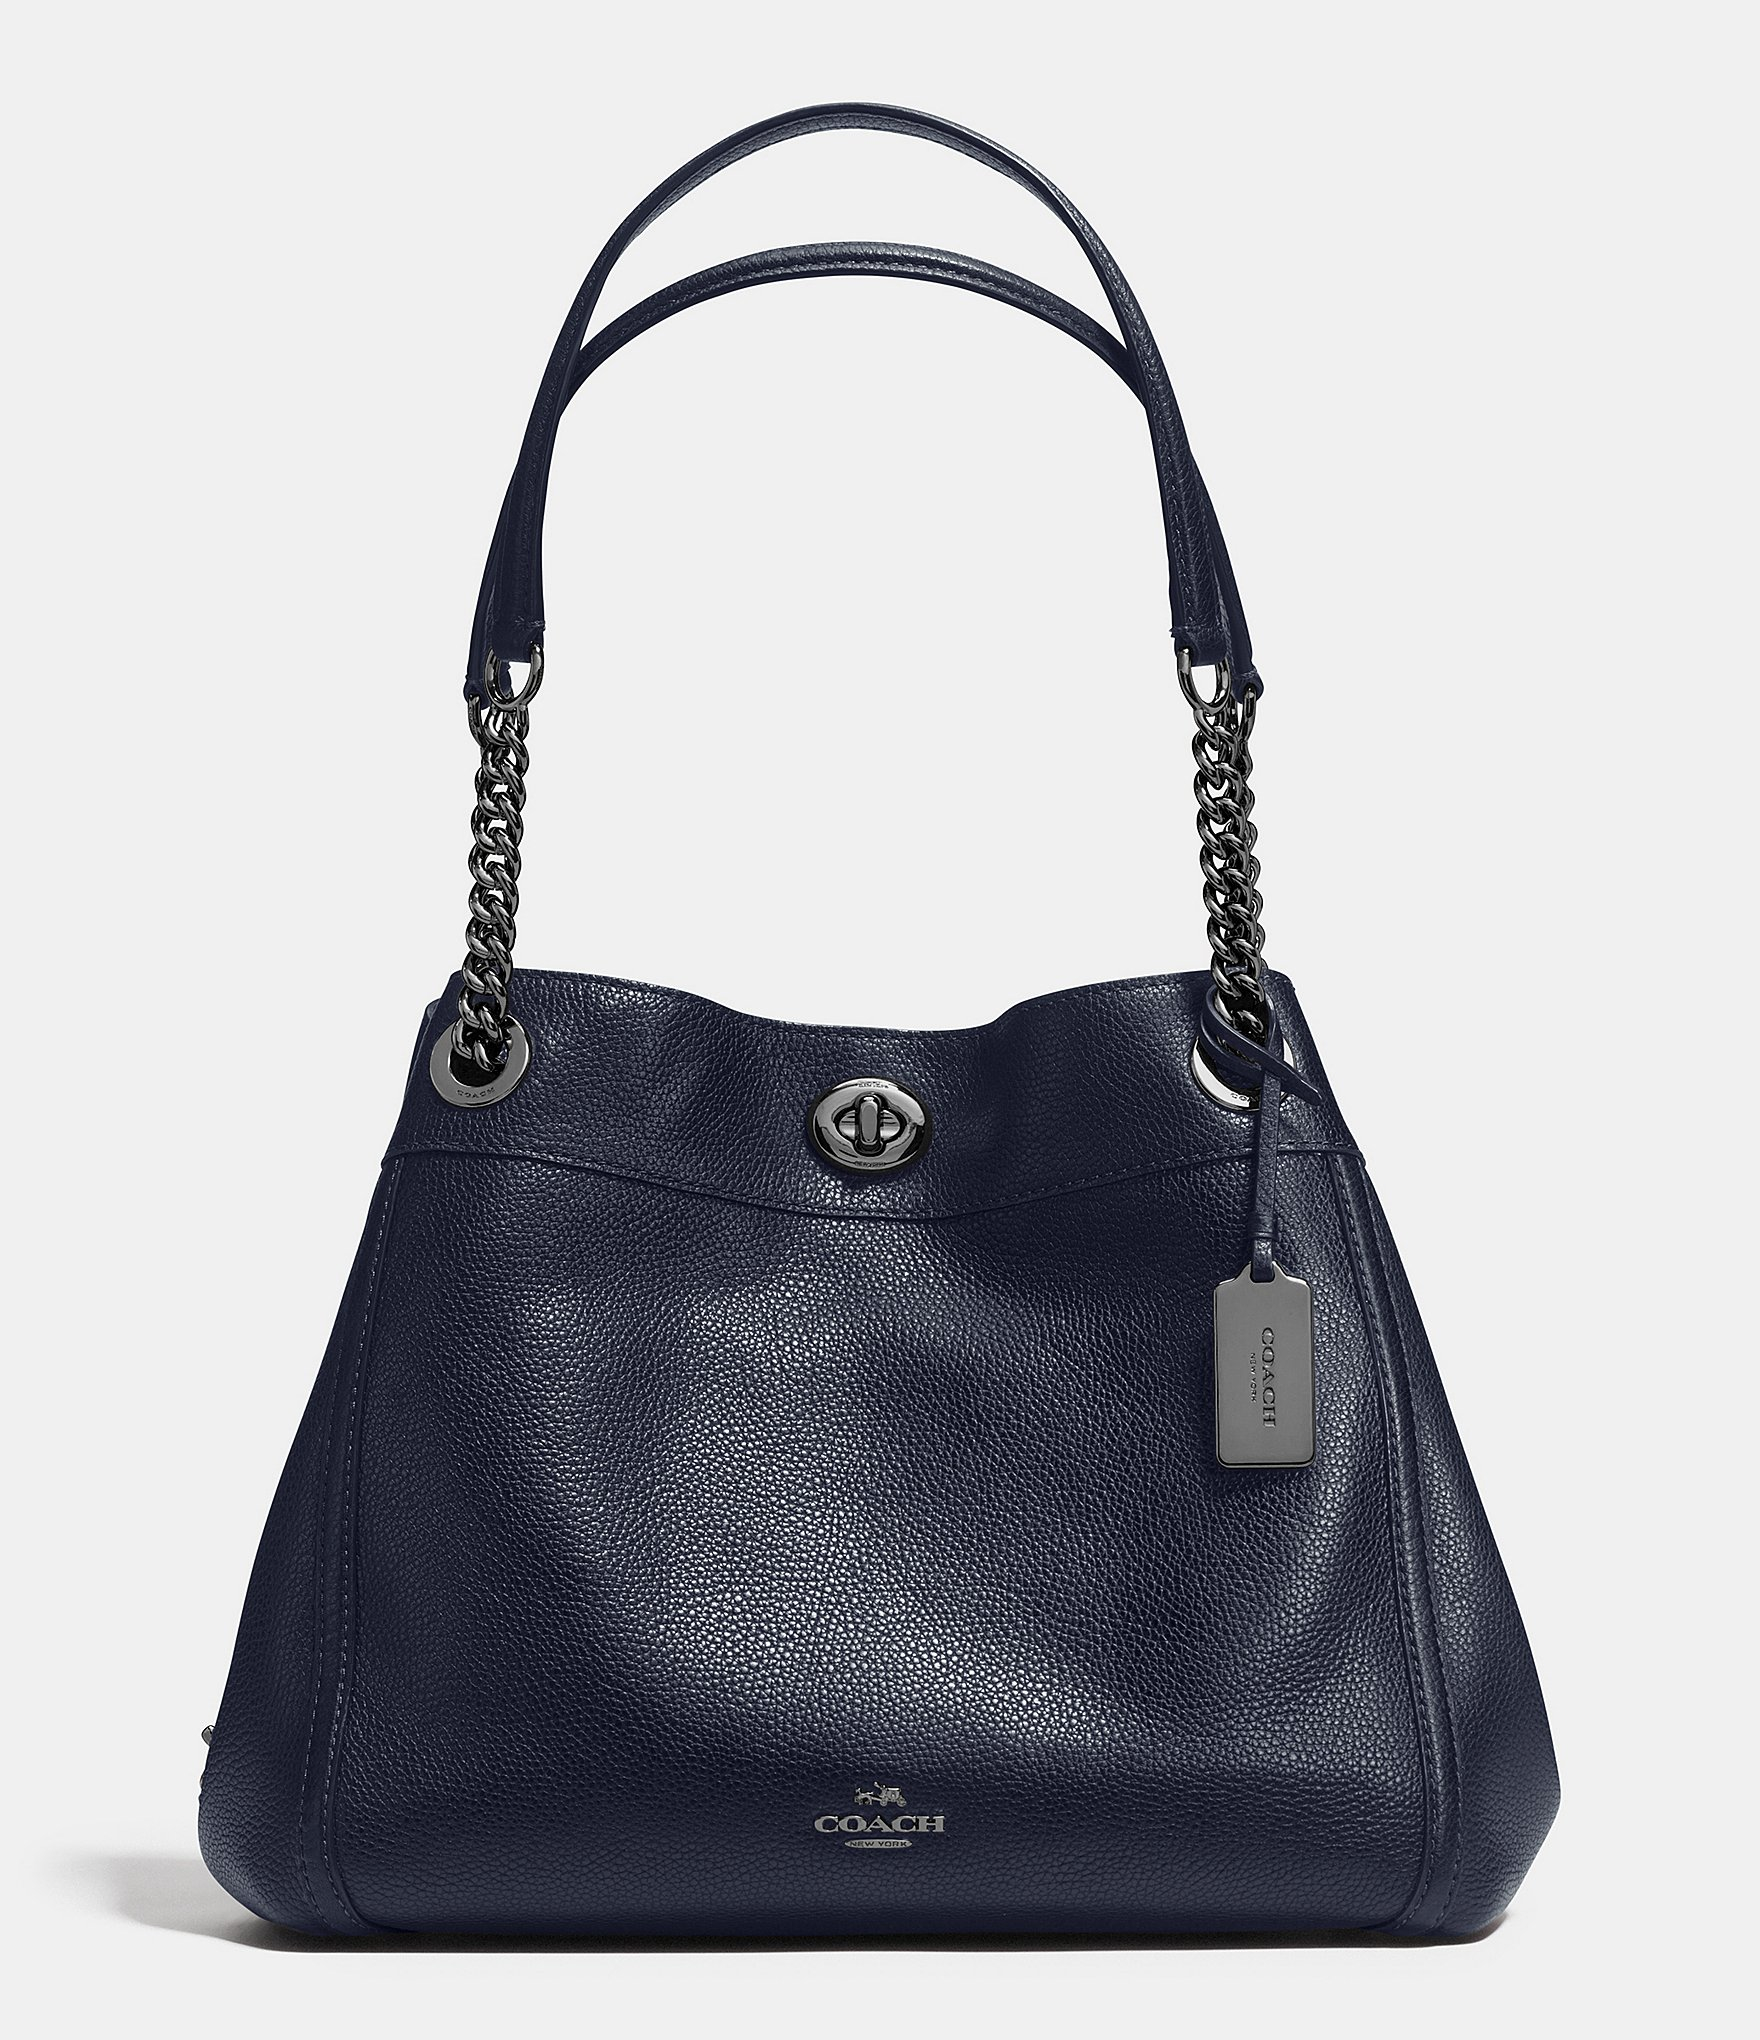 78ee59449 Coach Edie Turnlock Leather Shoulder Bag | Stanford Center for ...